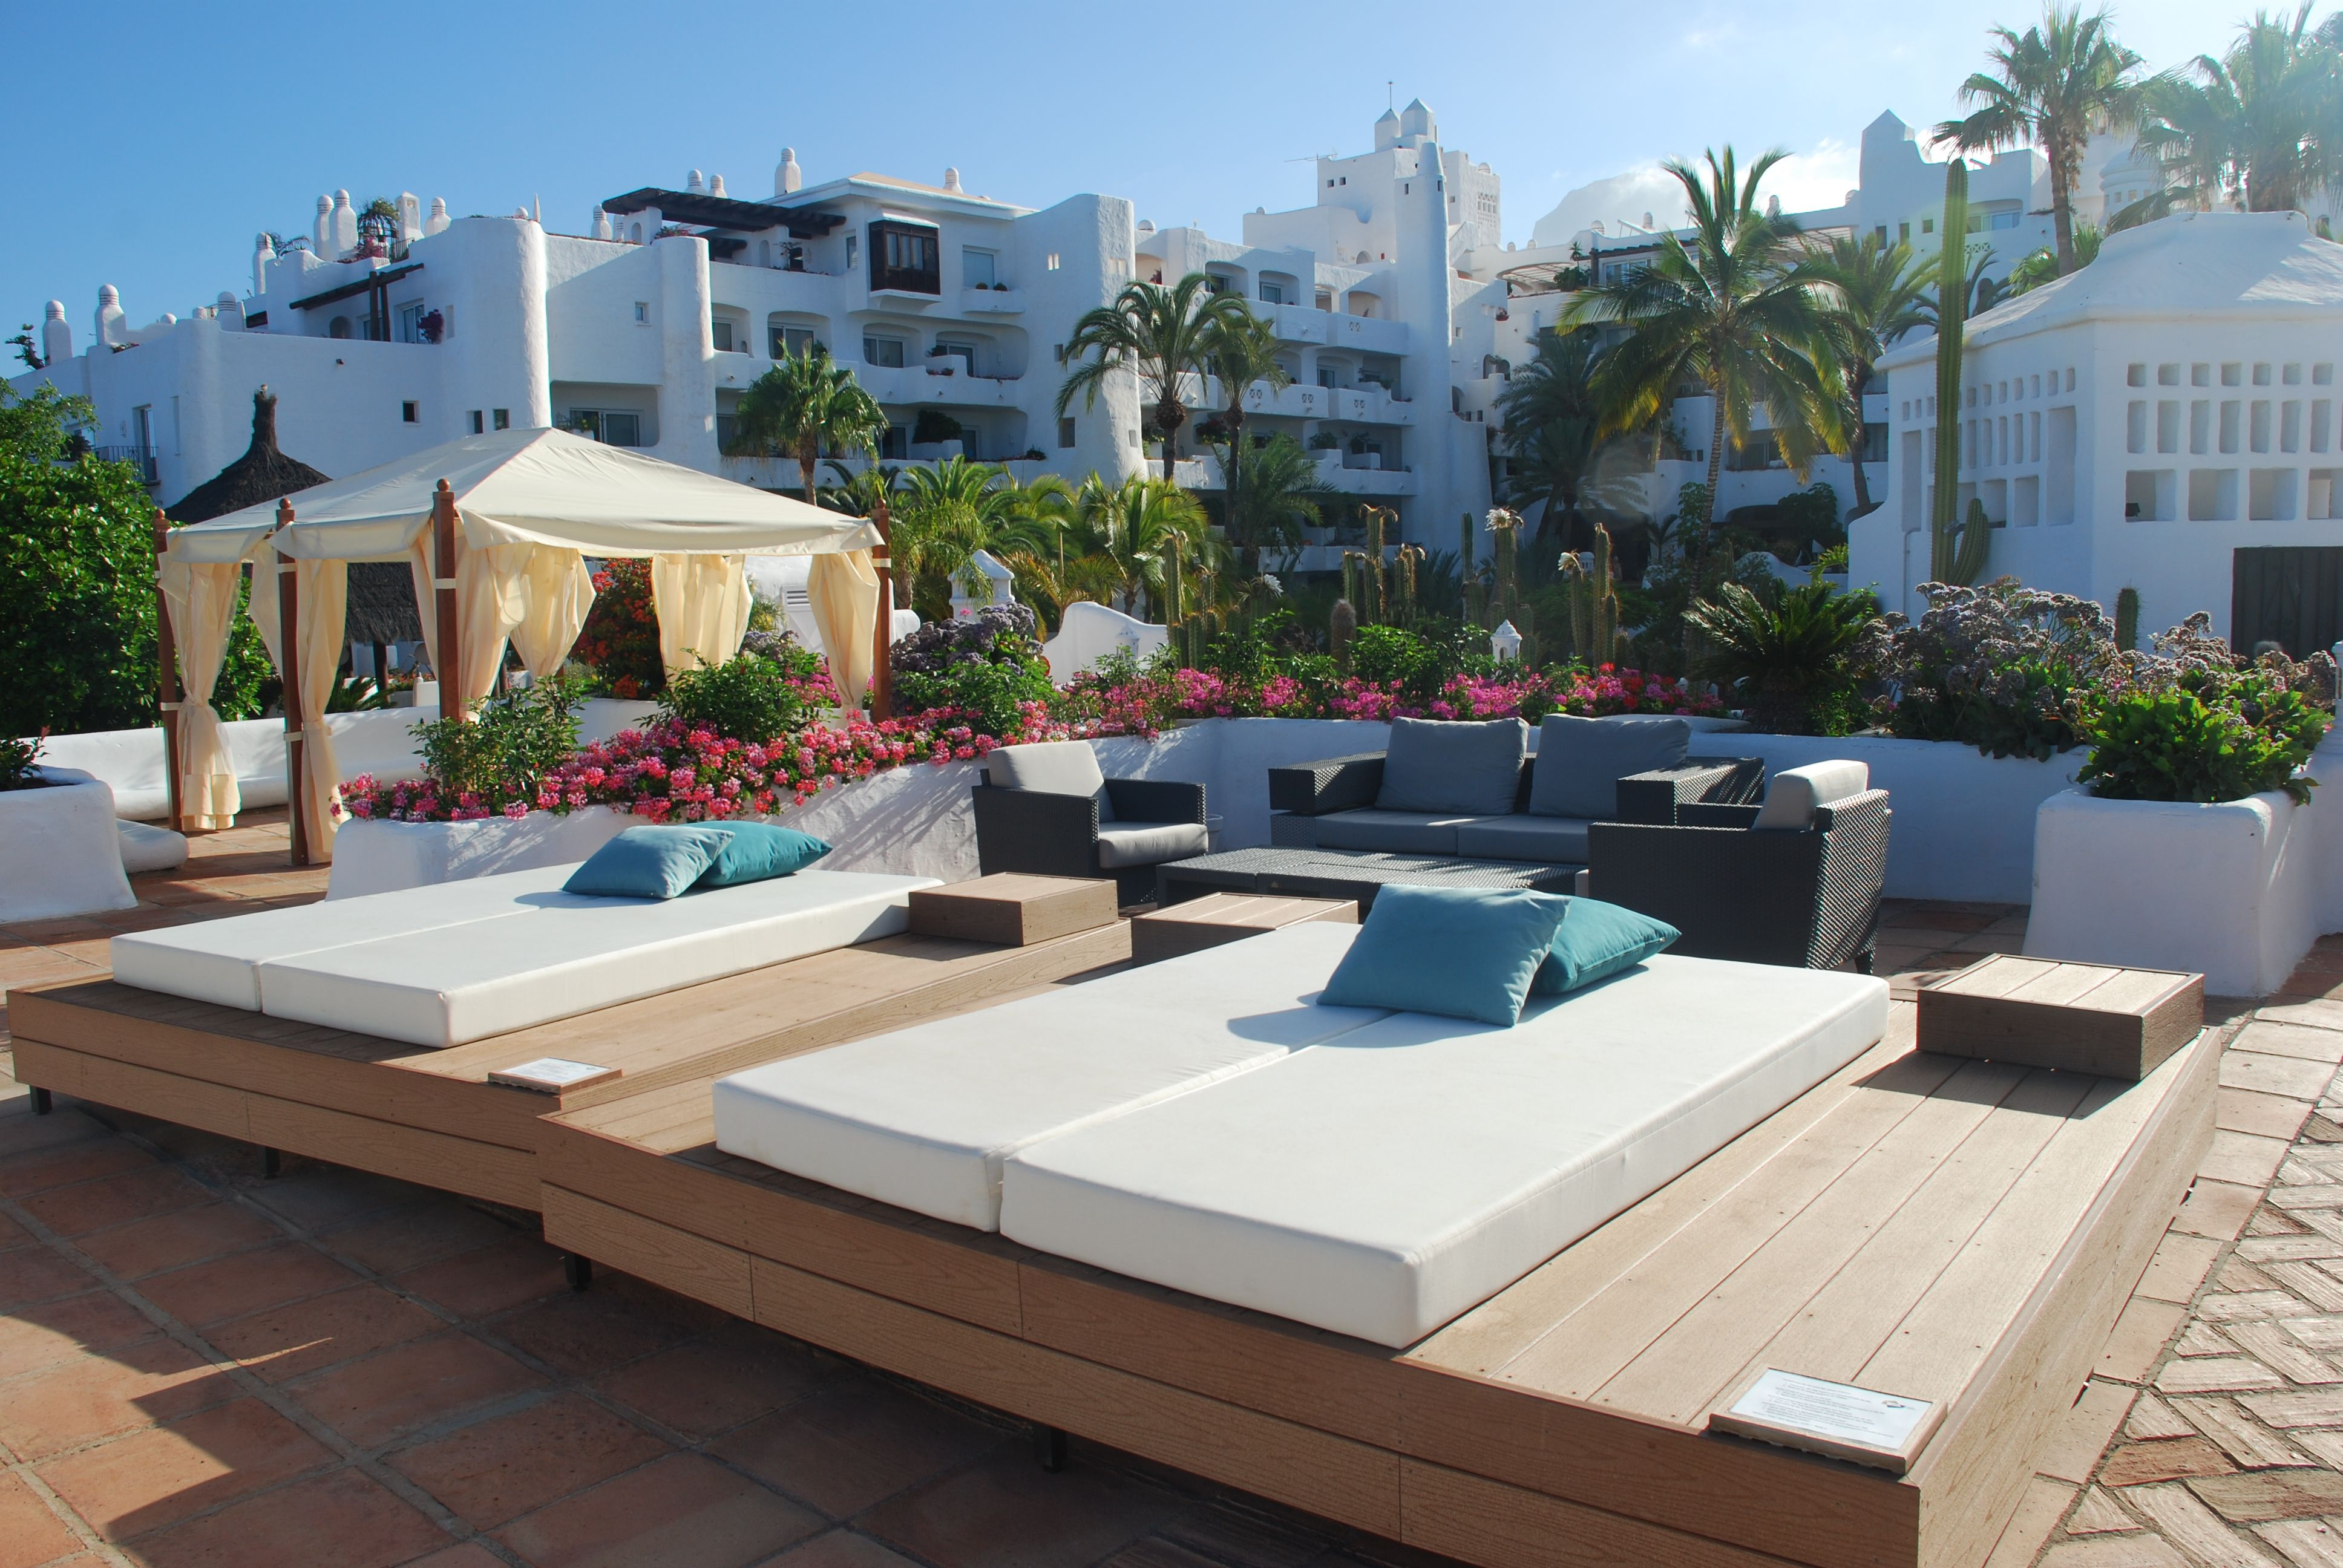 Hotel jardin tropical tenerife places i loved and for Hotel jardin tropical tenerife